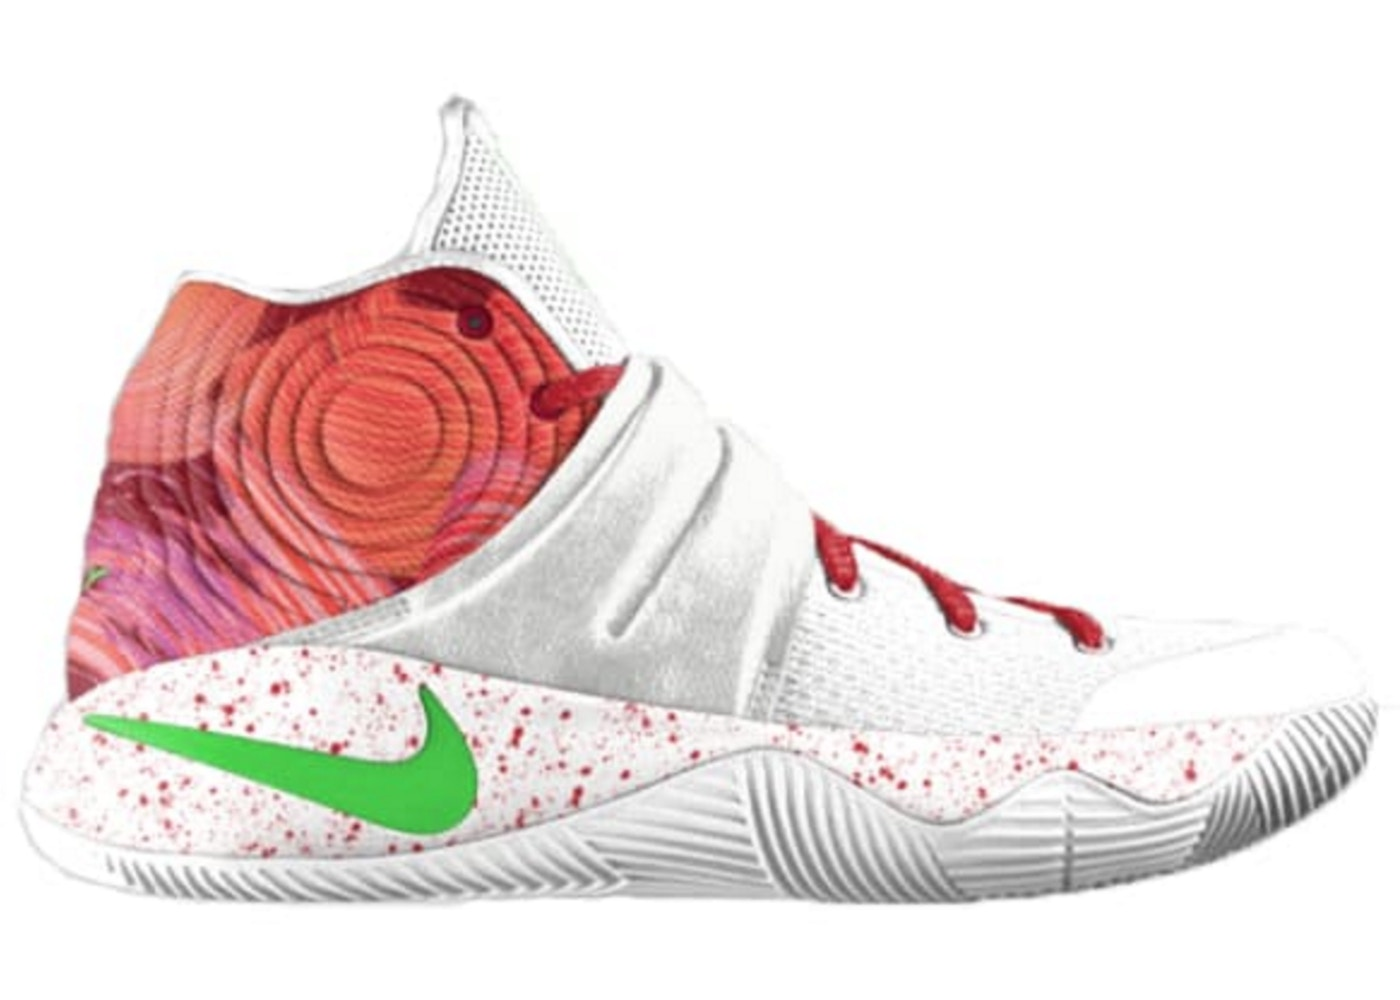 8952816c364a Buy Nike Basketball Kyrie Shoes   Deadstock Sneakers